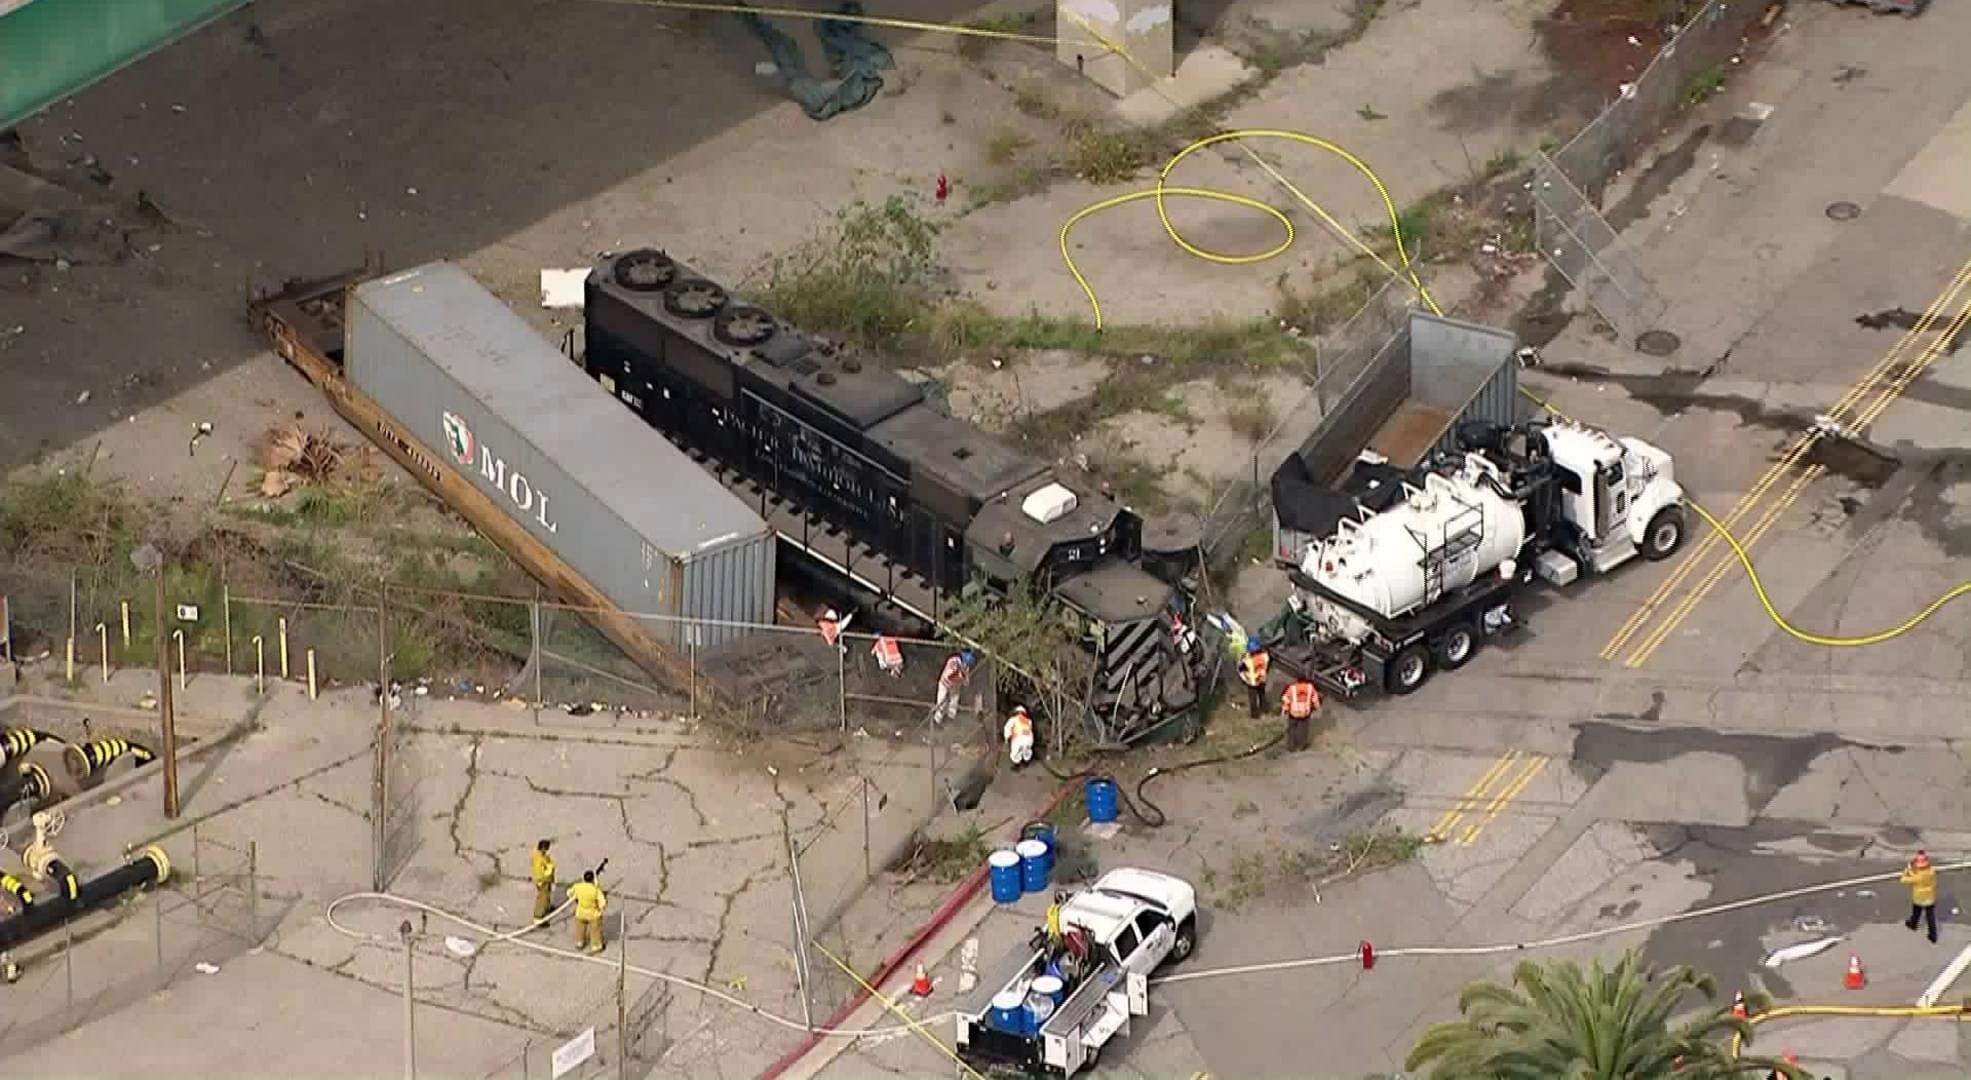 Engineer Tries to Crash Train Into USNS Mercy at the Port of LA